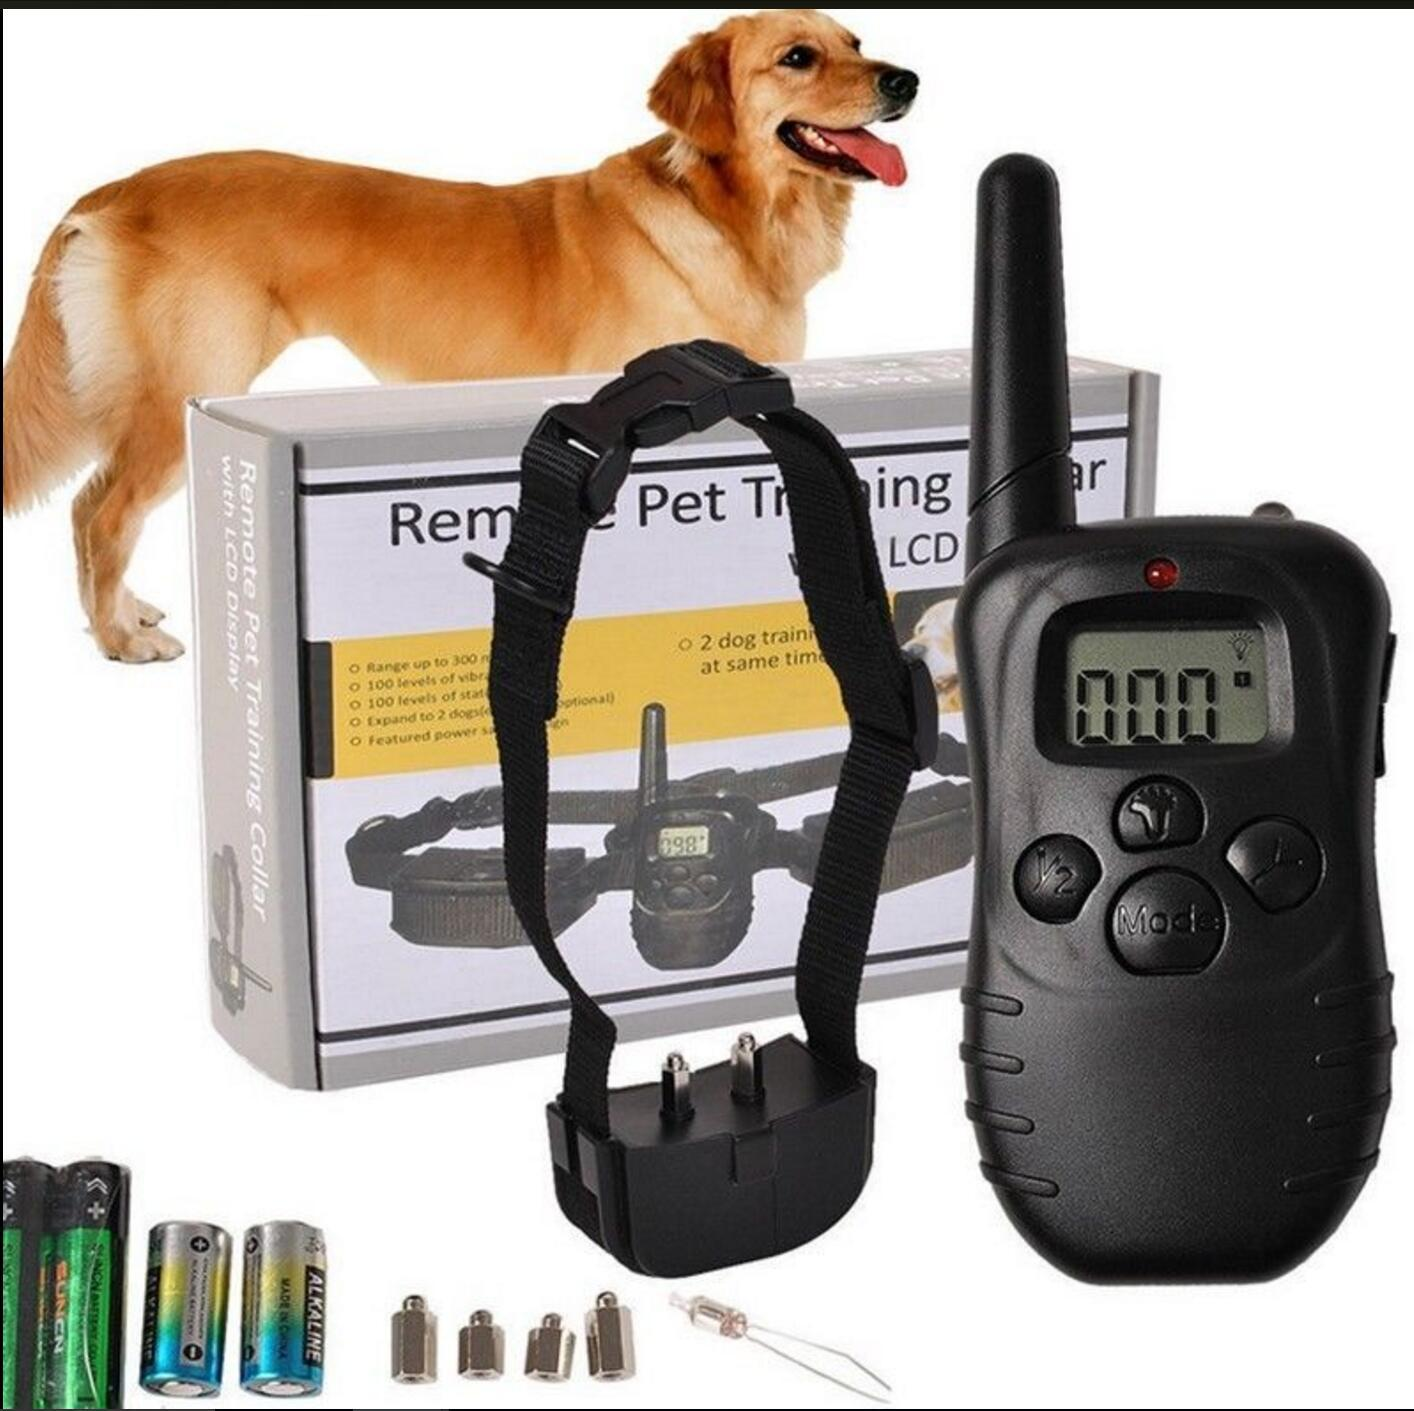 Remote Control Dog Trainer Vibration Electric Shock Neck Ring Zhi Fei Qi 300 M One To One Dog Remote Training